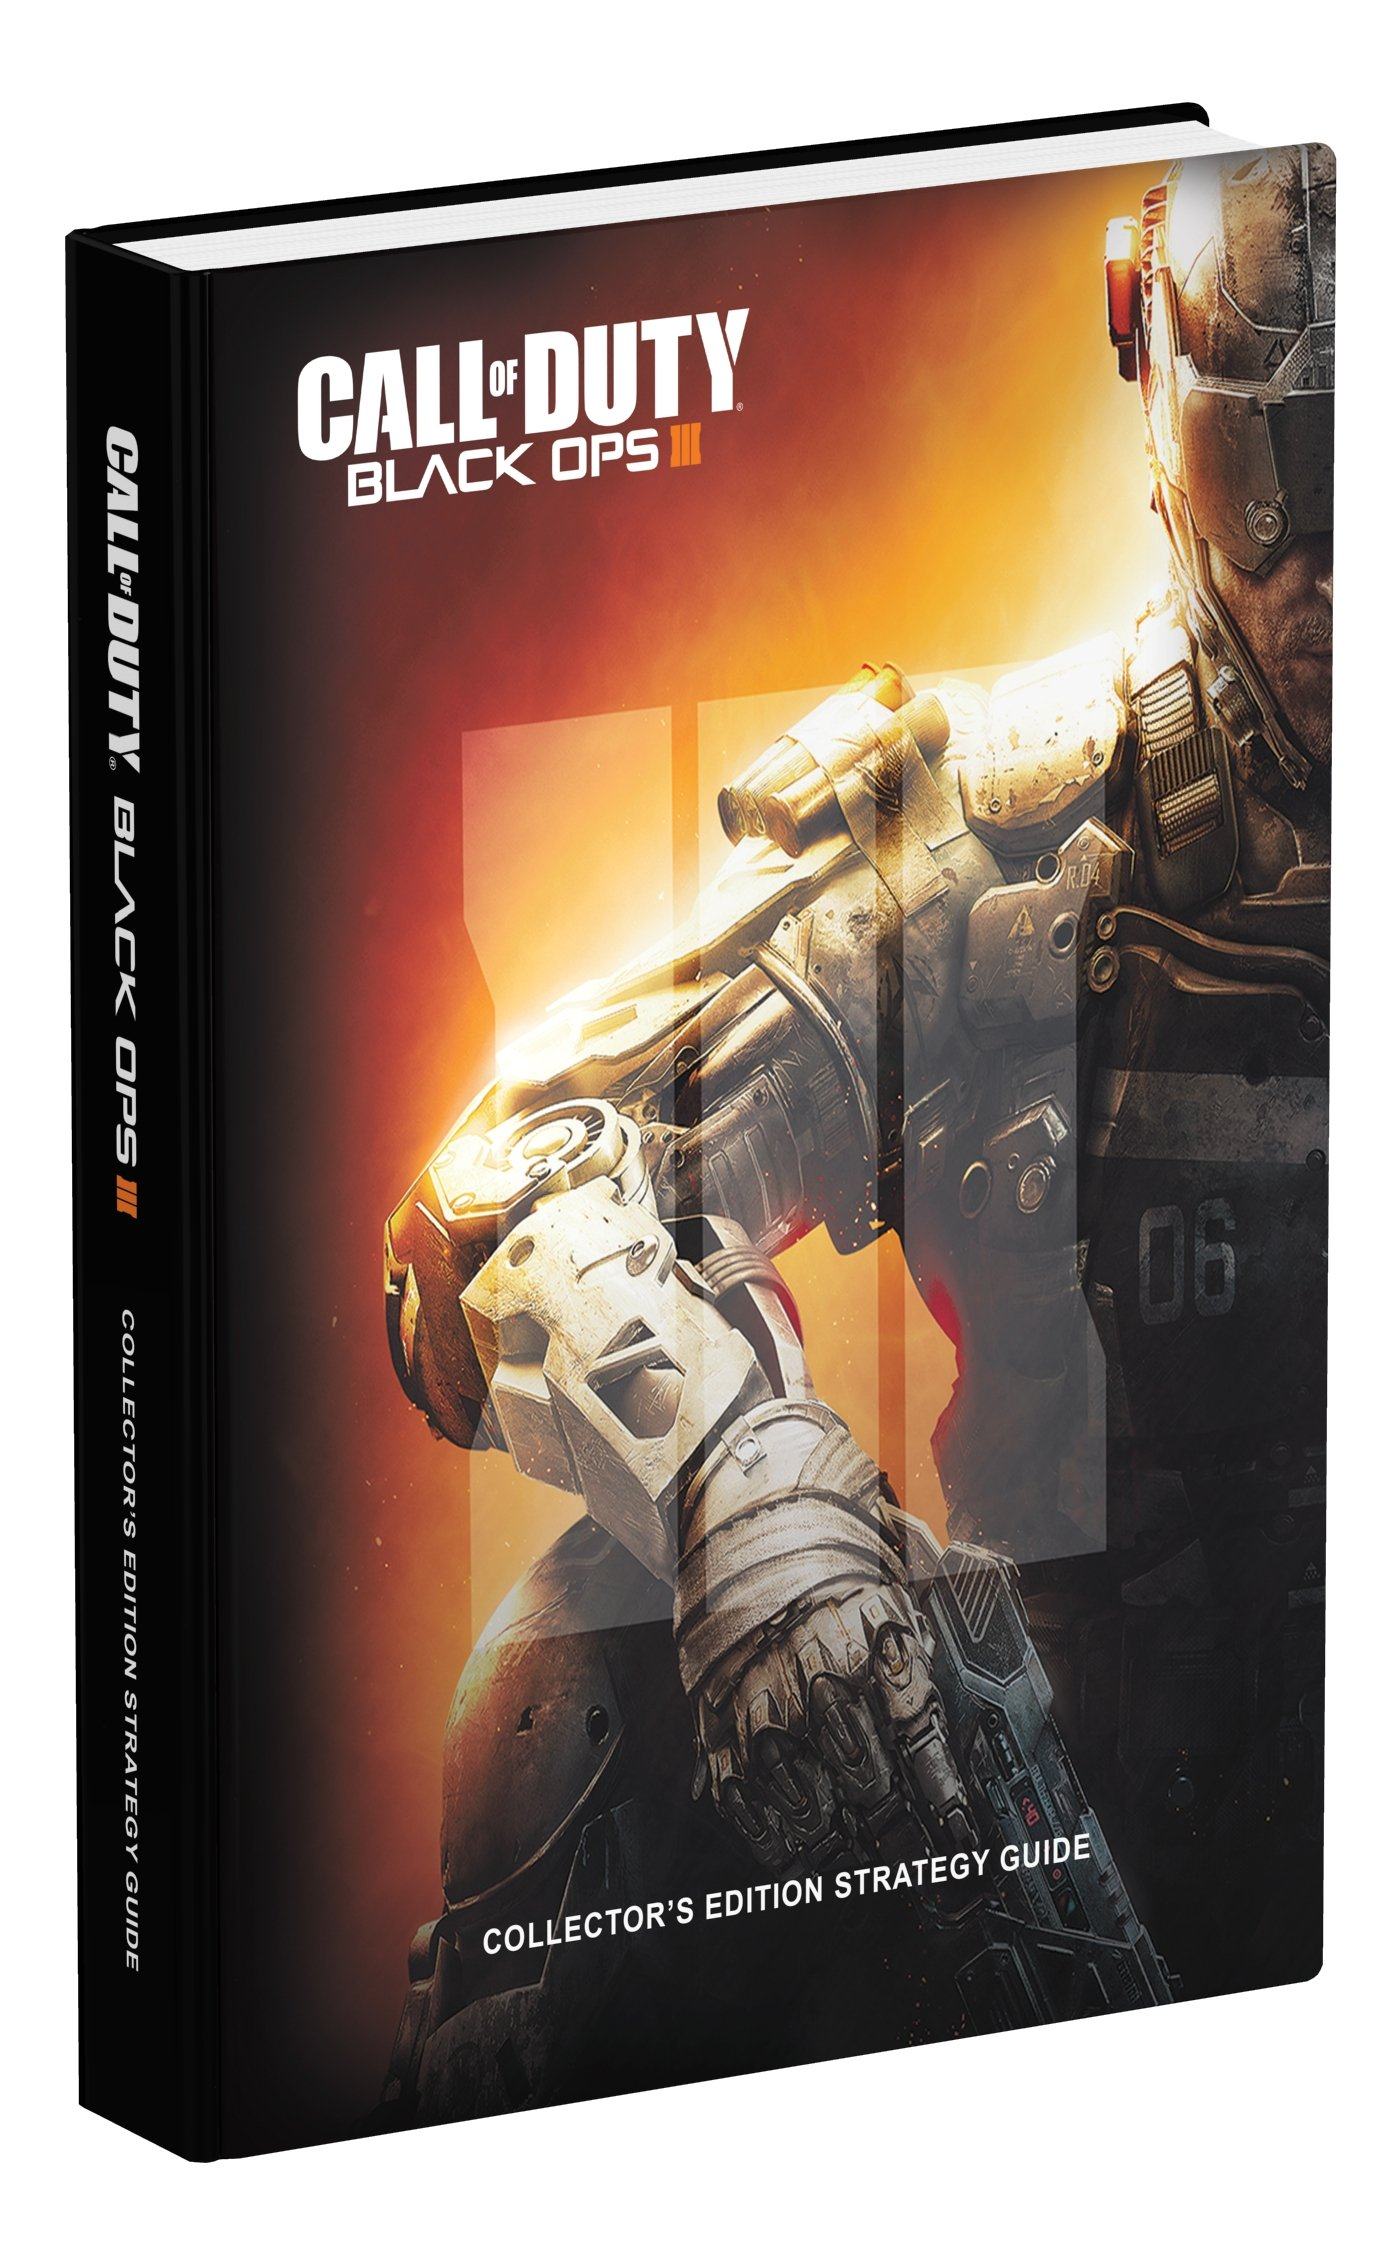 Call of Duty Black Ops III Collectors Edition Guide